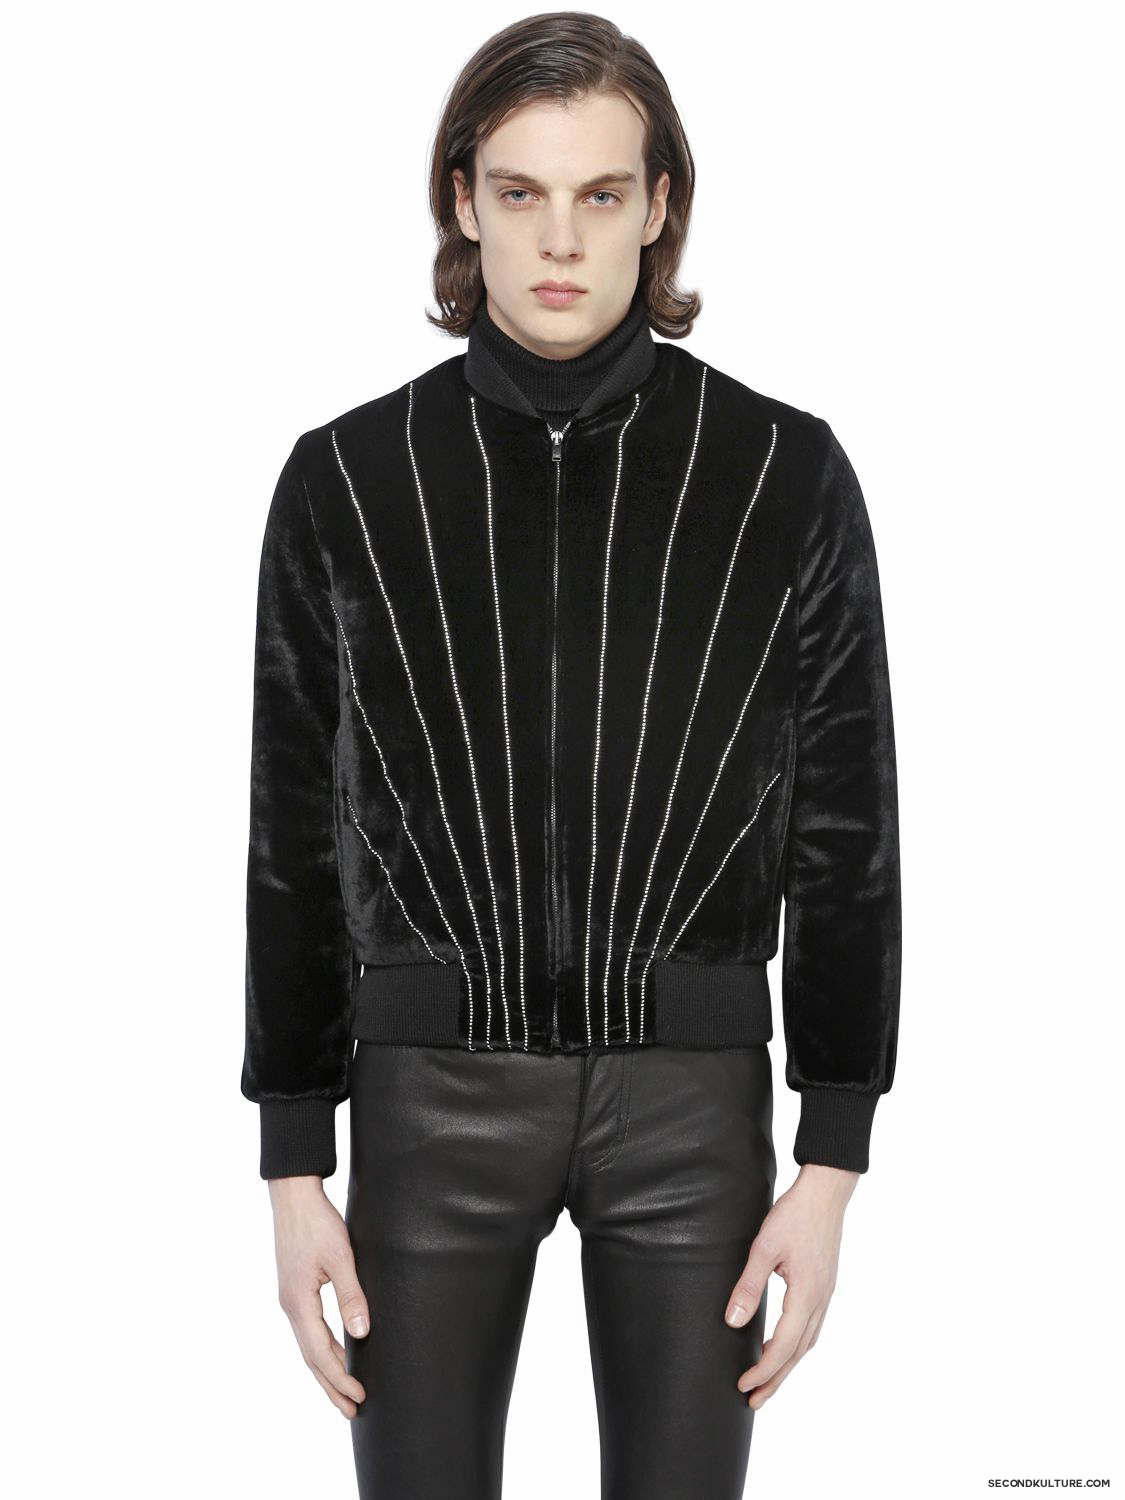 Saint-Laurent-Black-Swarovski-Viscose-Velvet-Bomber-Jacket-Fall-Winter-2015-1